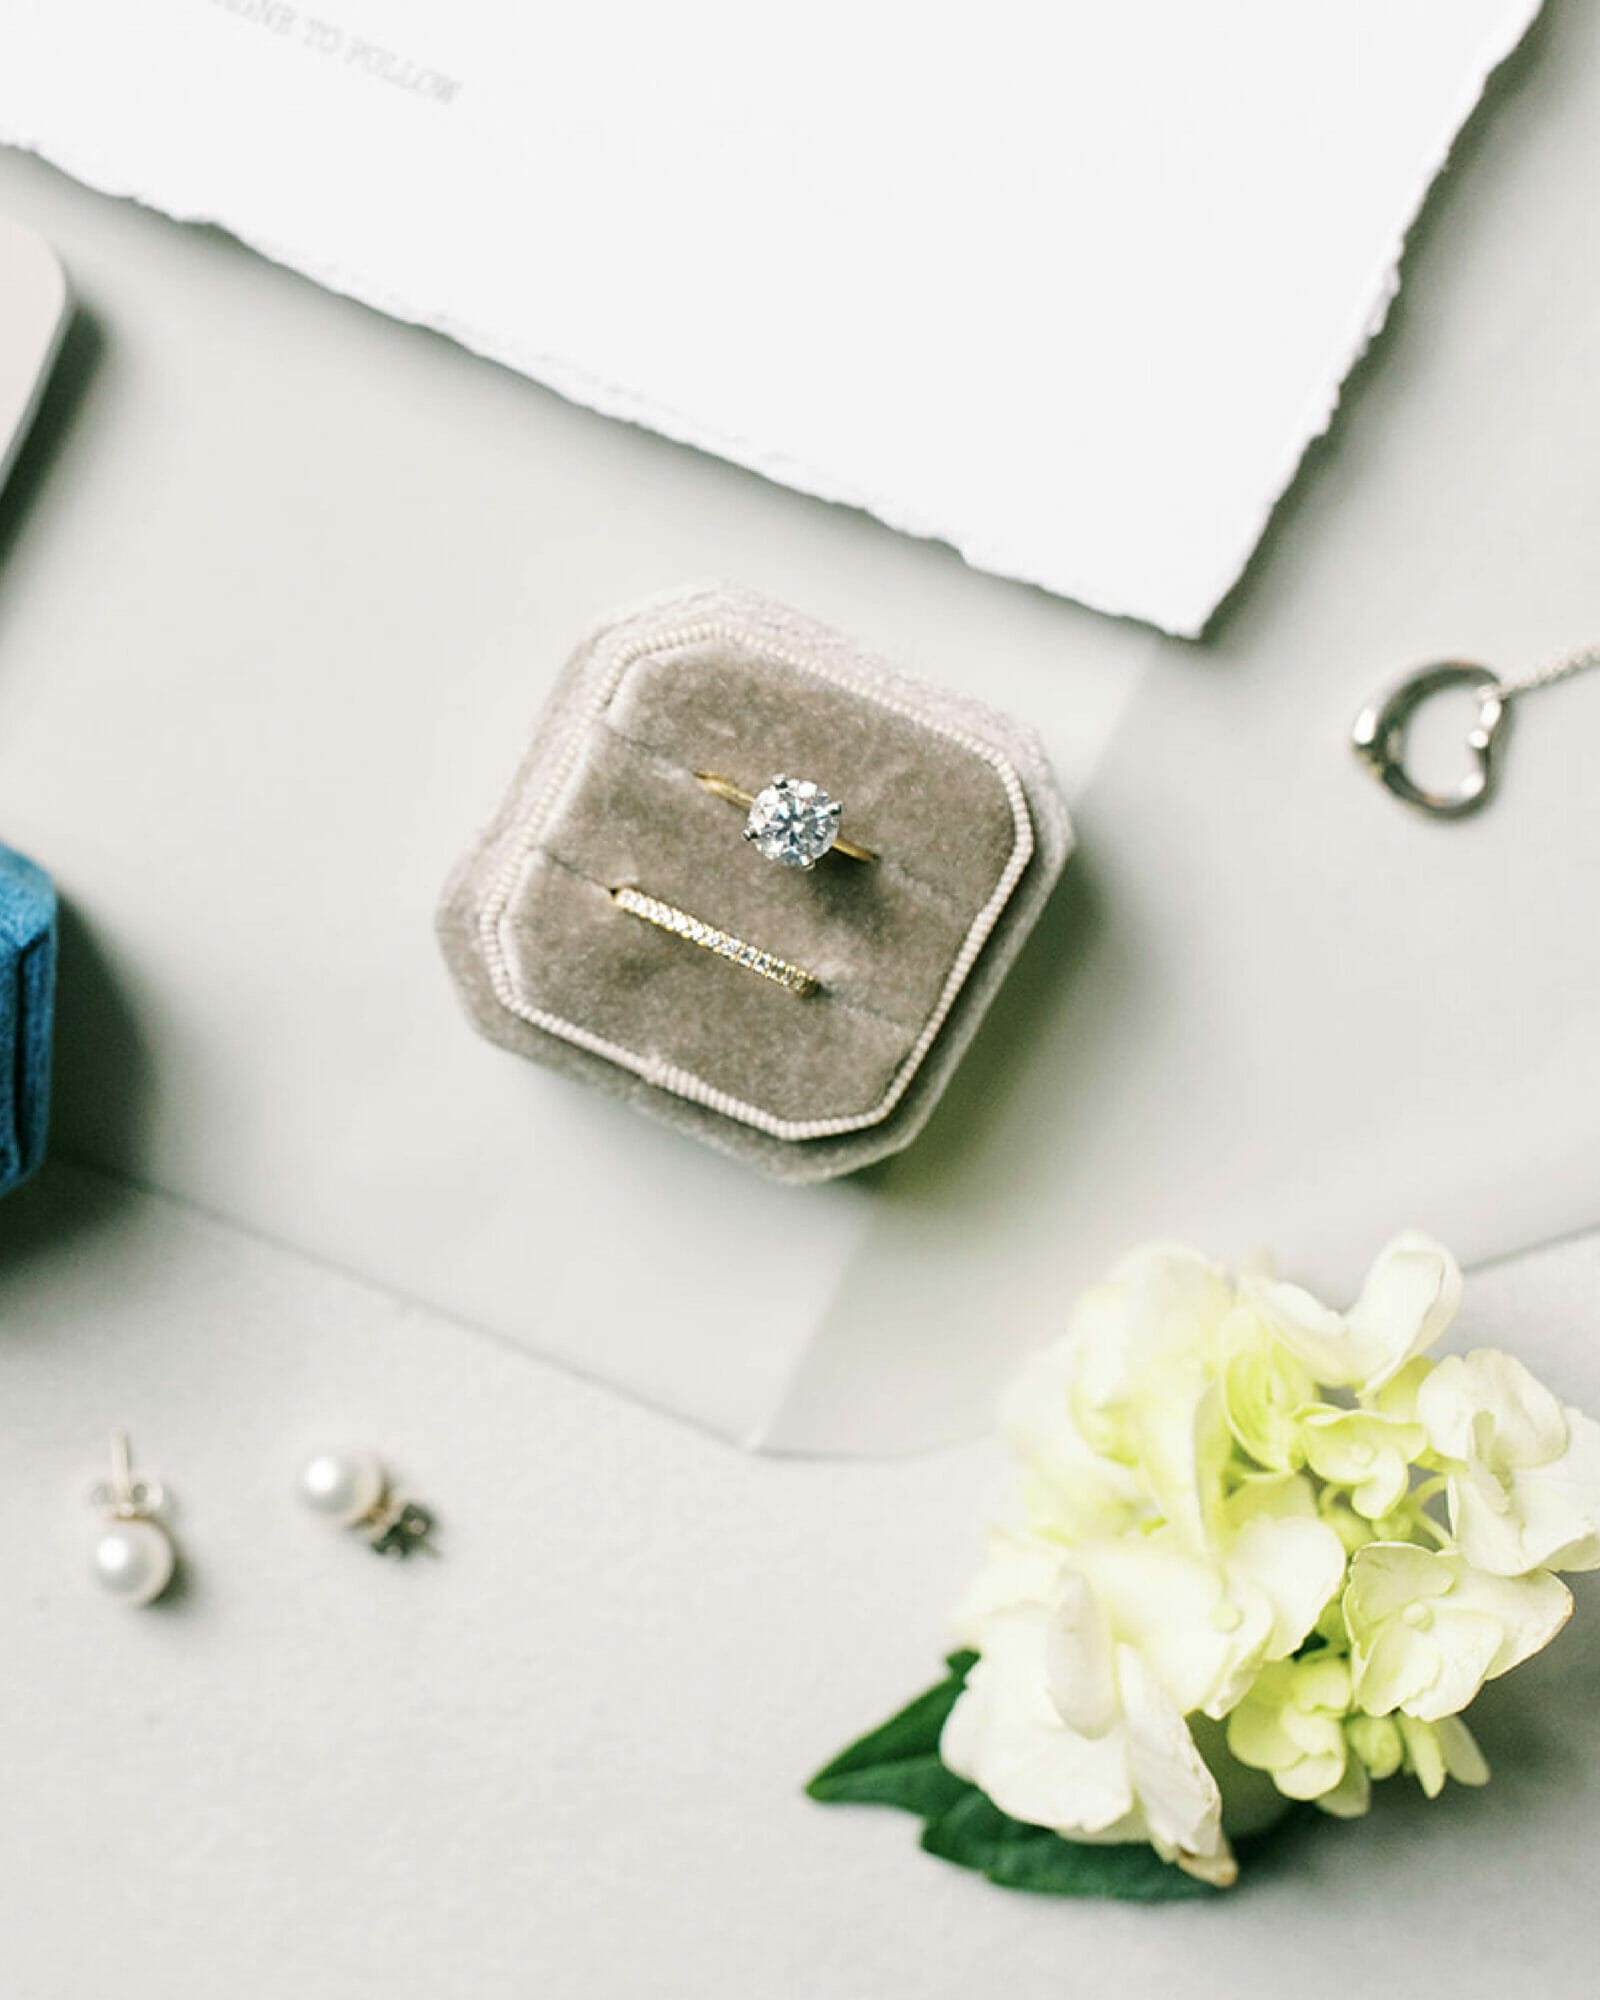 Camille's engagement ring and wedding ring